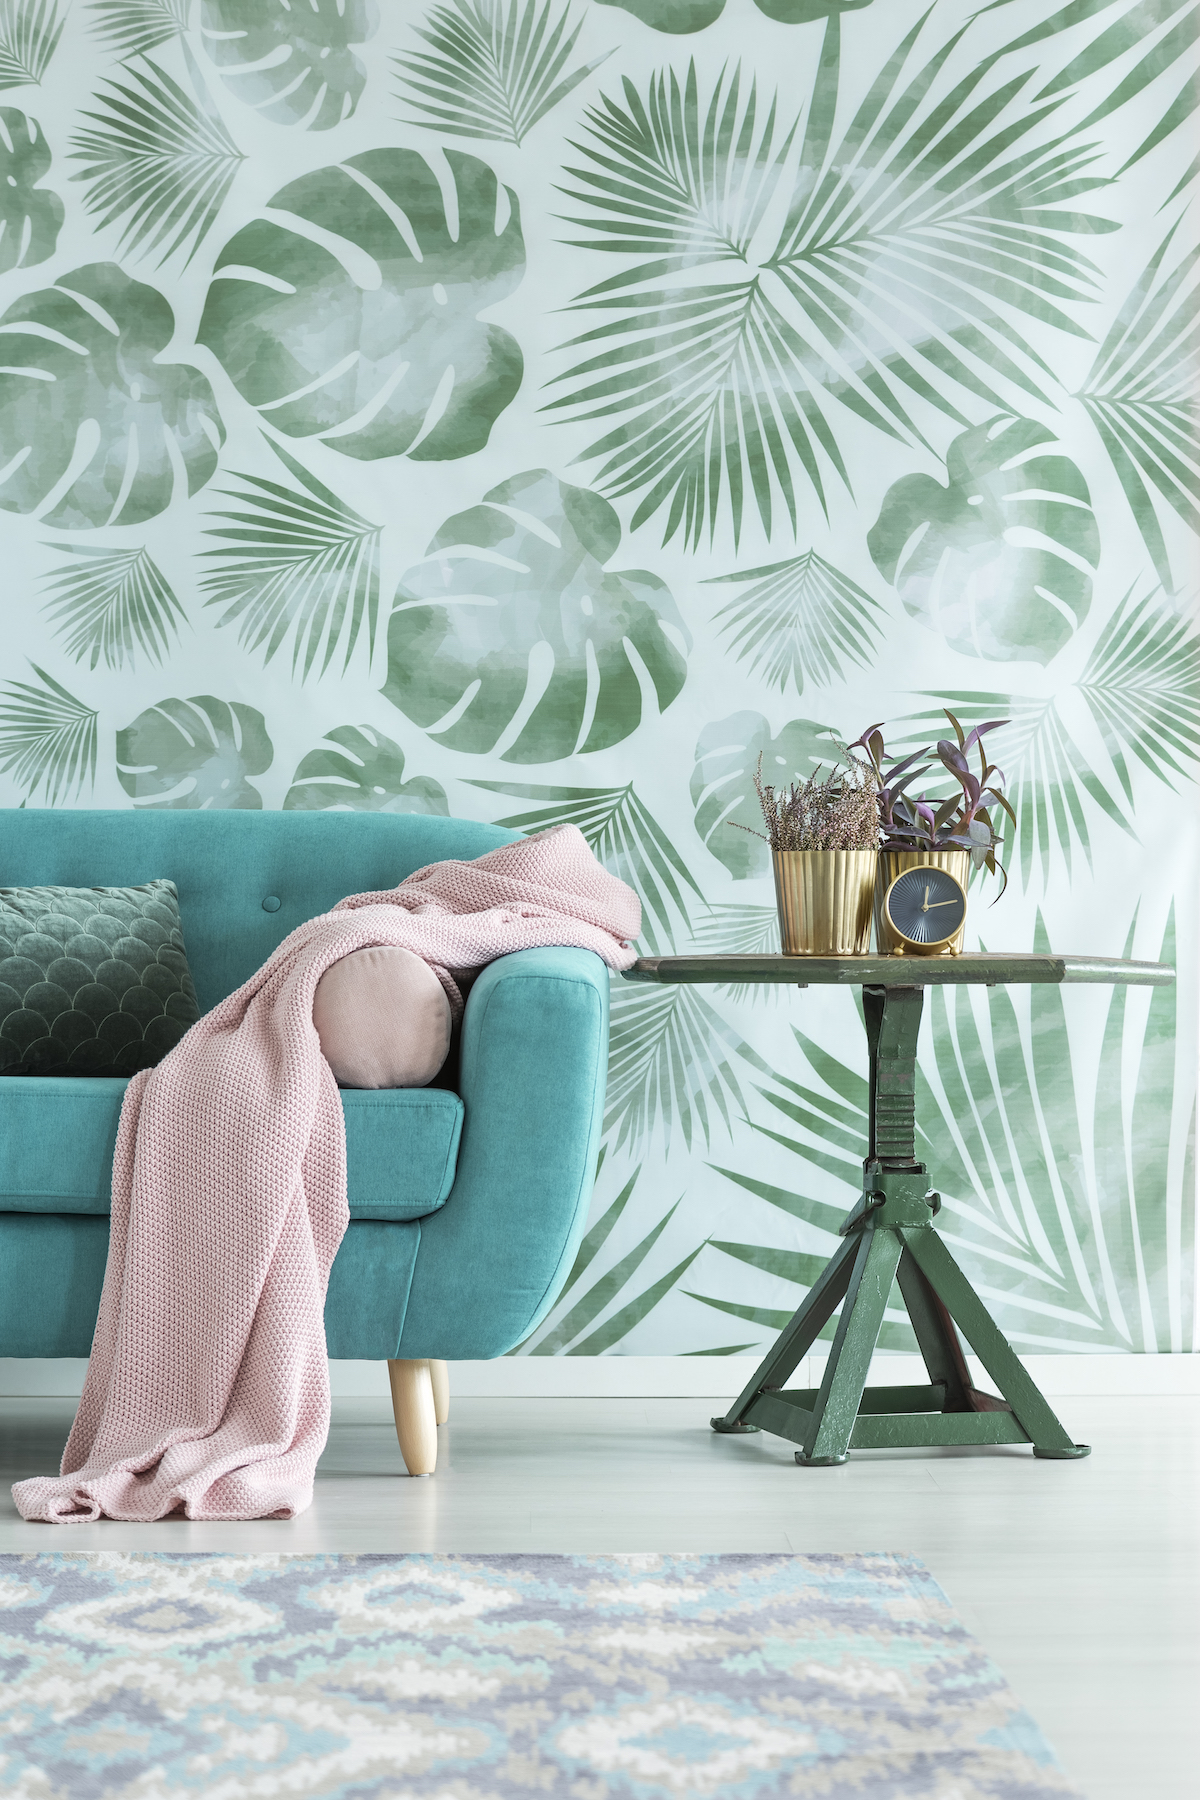 Best Paint Colors 2019, teal couch with leaf painted wall